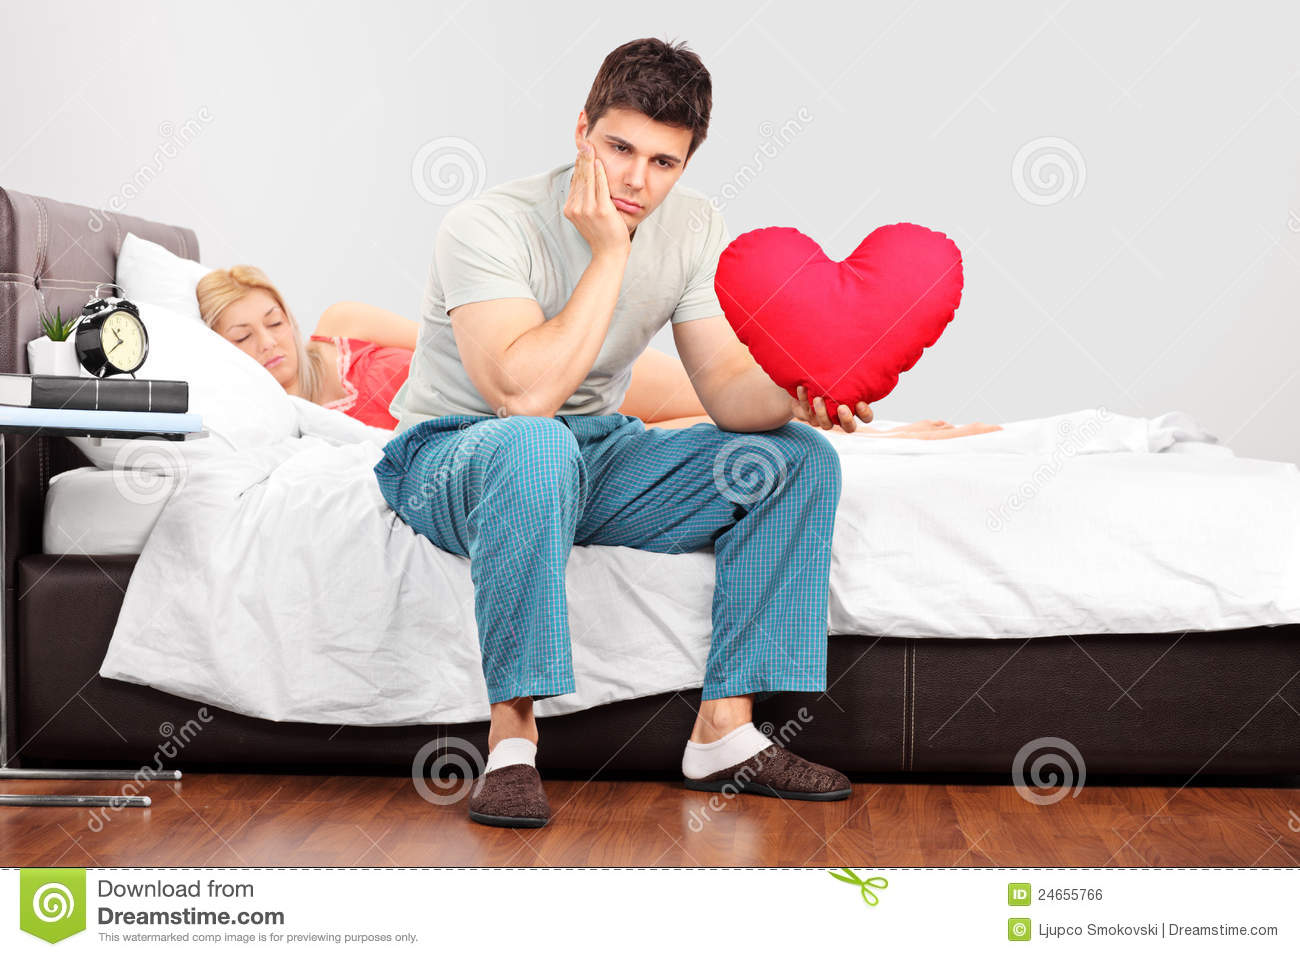 Man Shaped Pillow Man In Thoughts Holding A Heart Shaped Pillow Royalty Free Stock